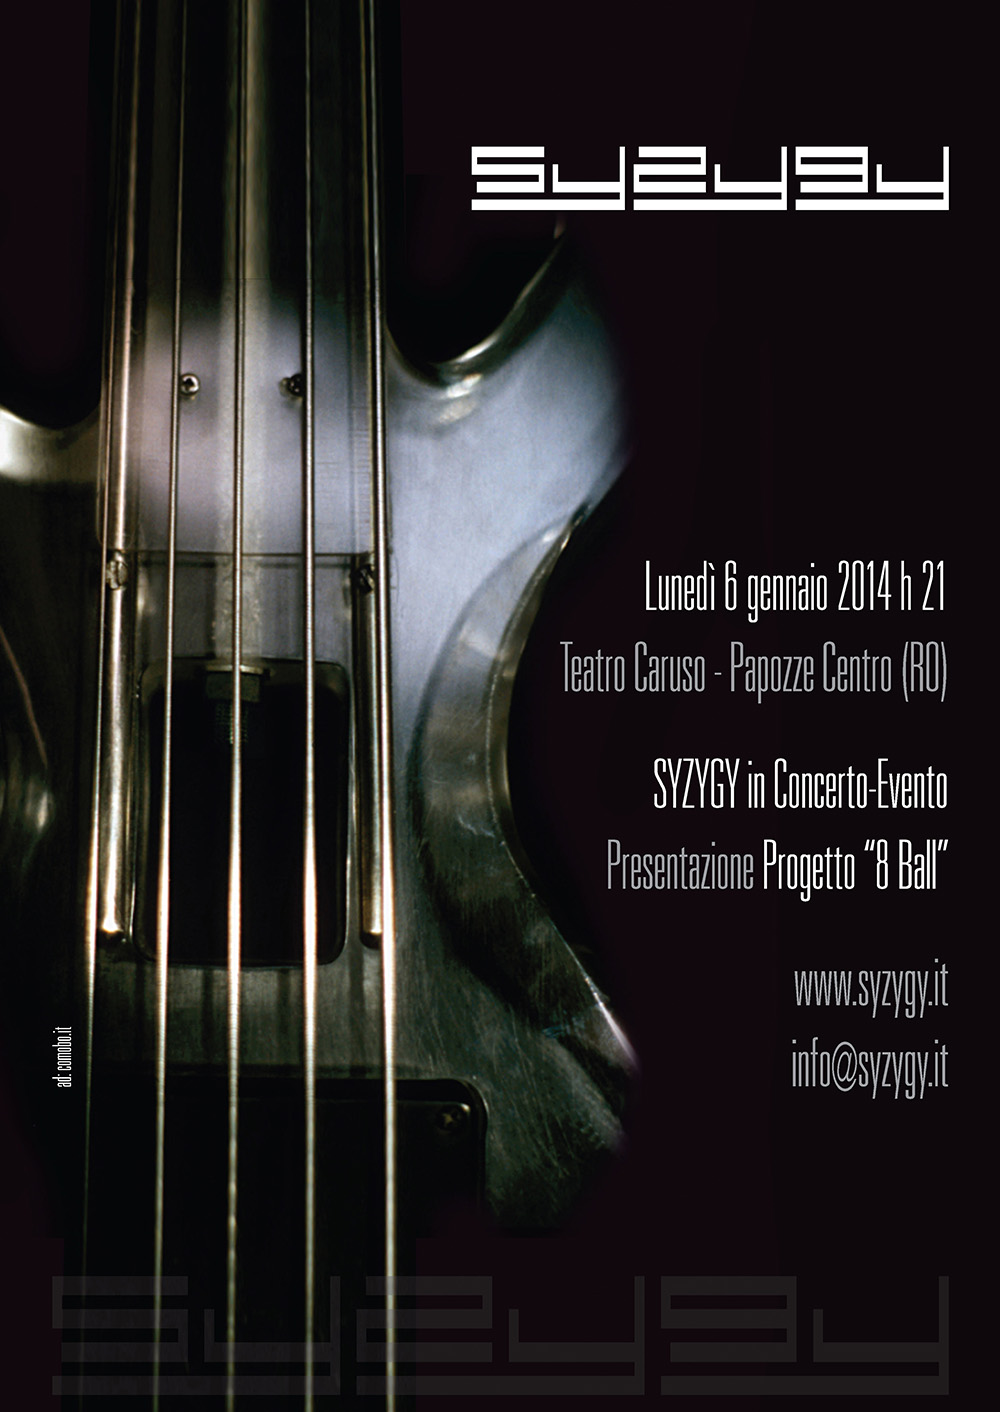 SYZYGY in concerto